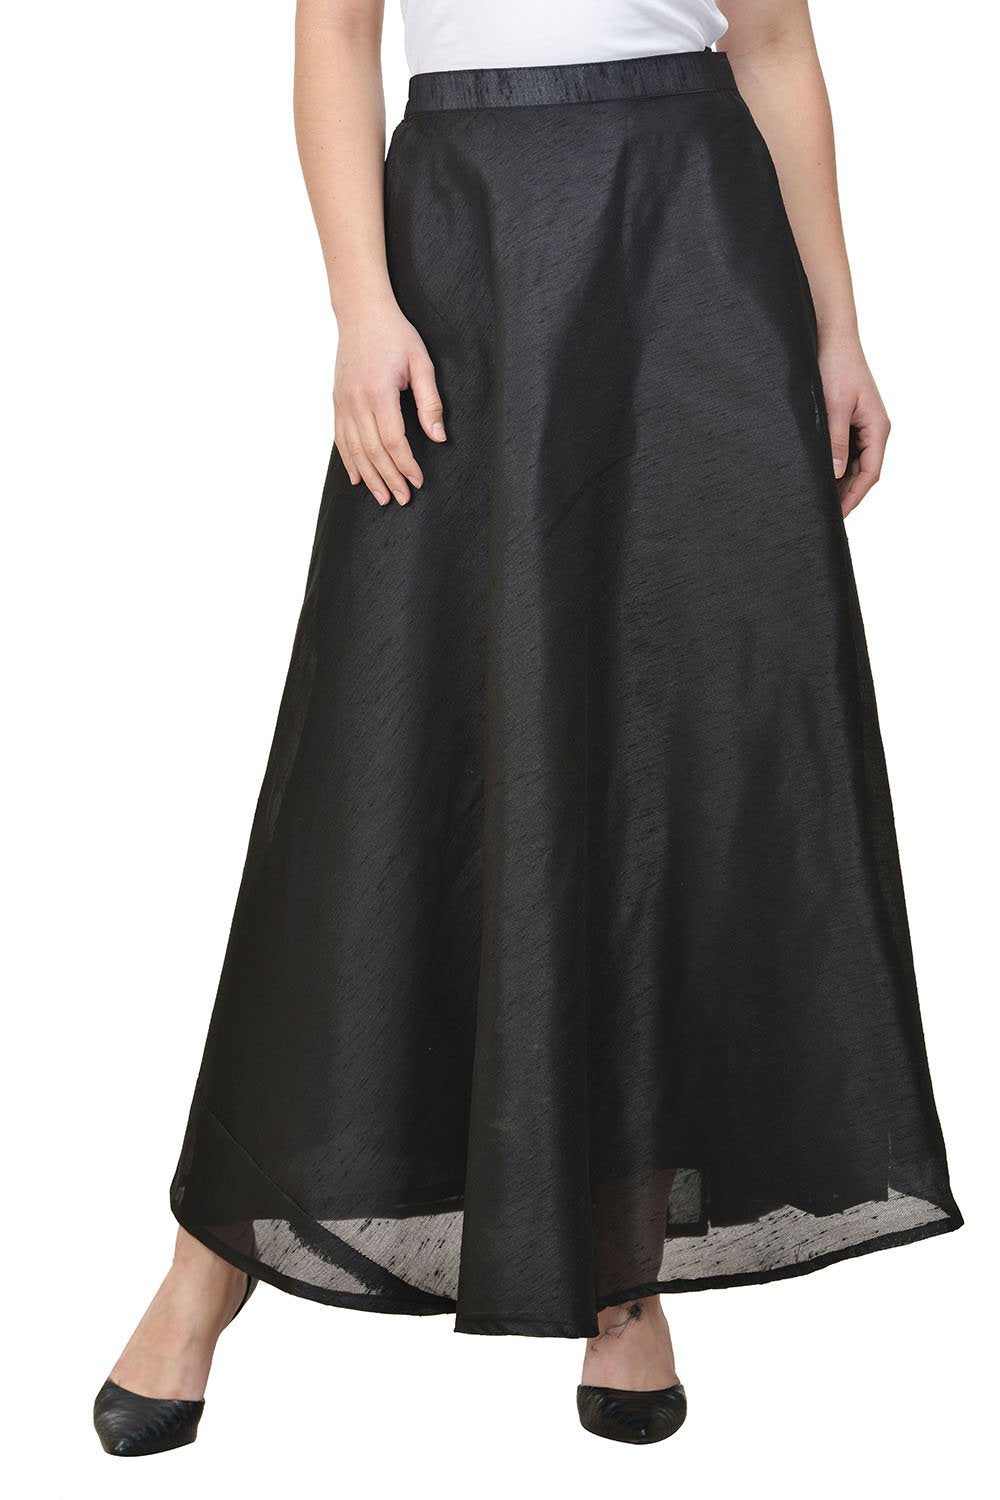 Castle Black Solid Raw Silk Skirt